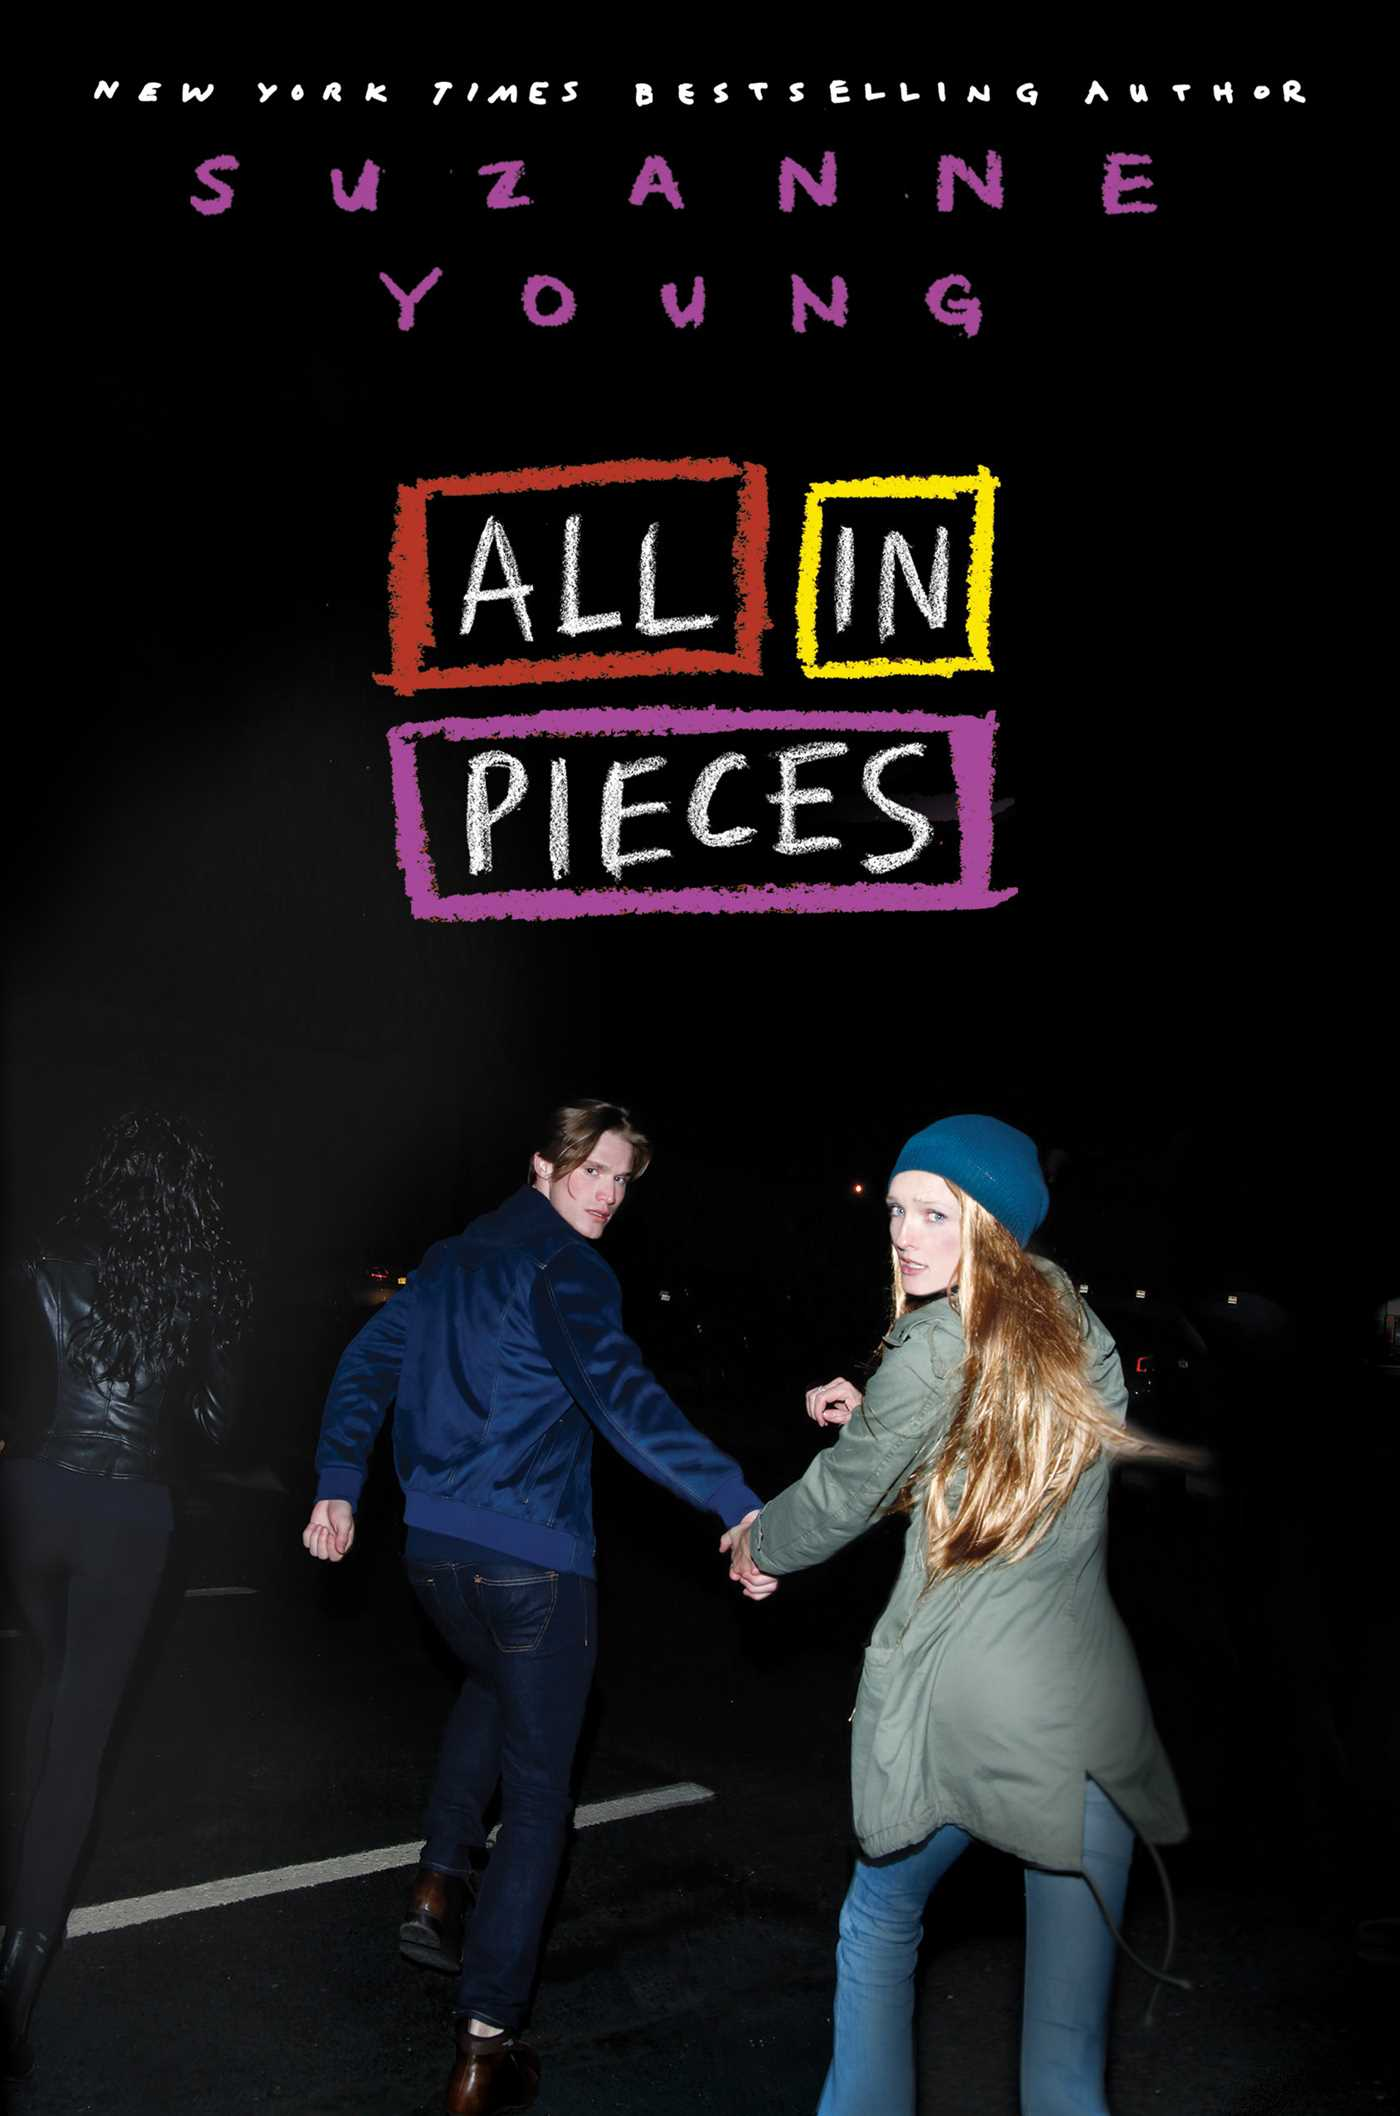 All in pieces 9781481418836 hr